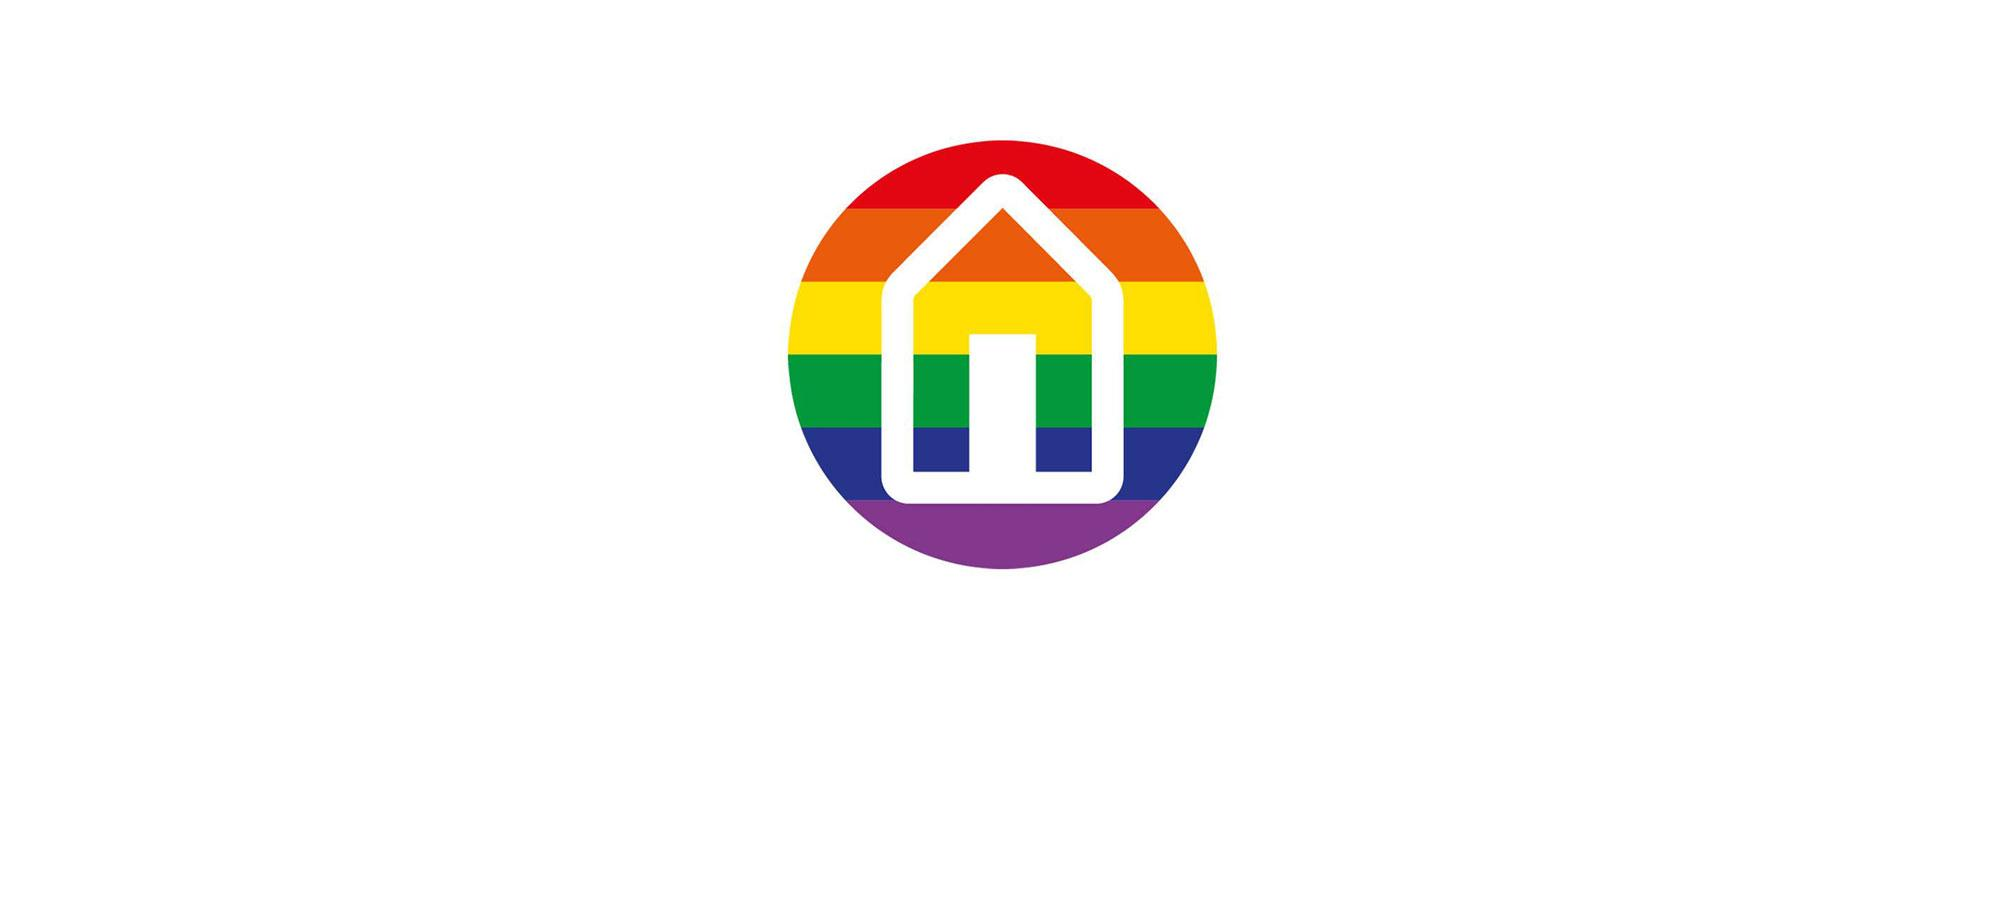 Pride-logo-for-website-12.jpg